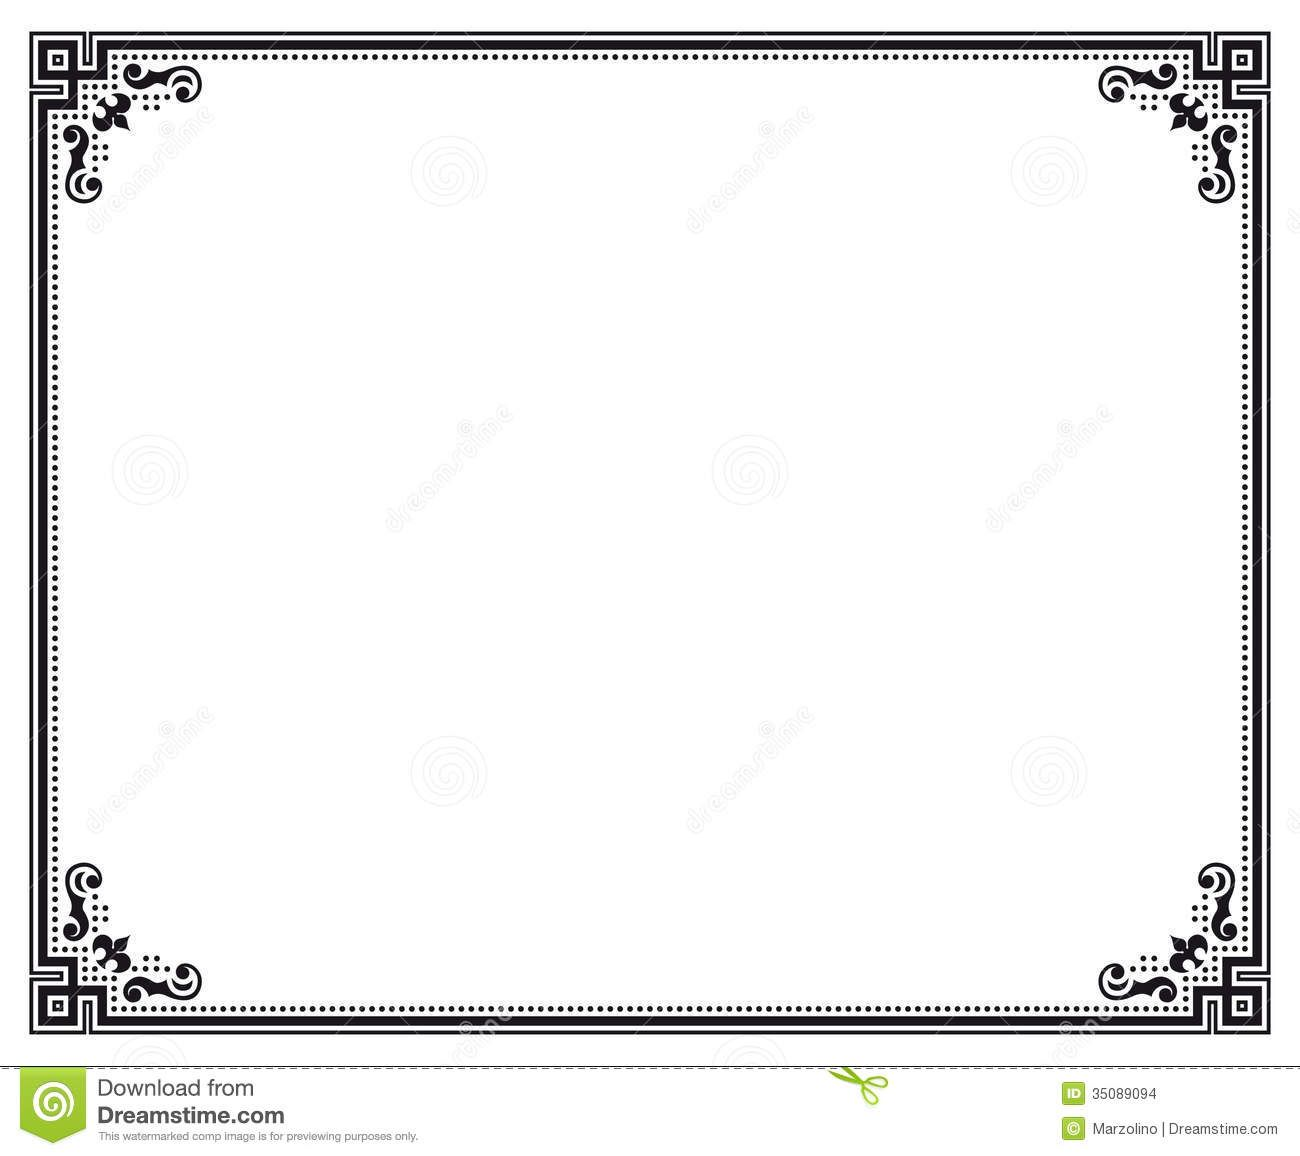 simple border jpg - Google Search*vector* | Tactile Light ...